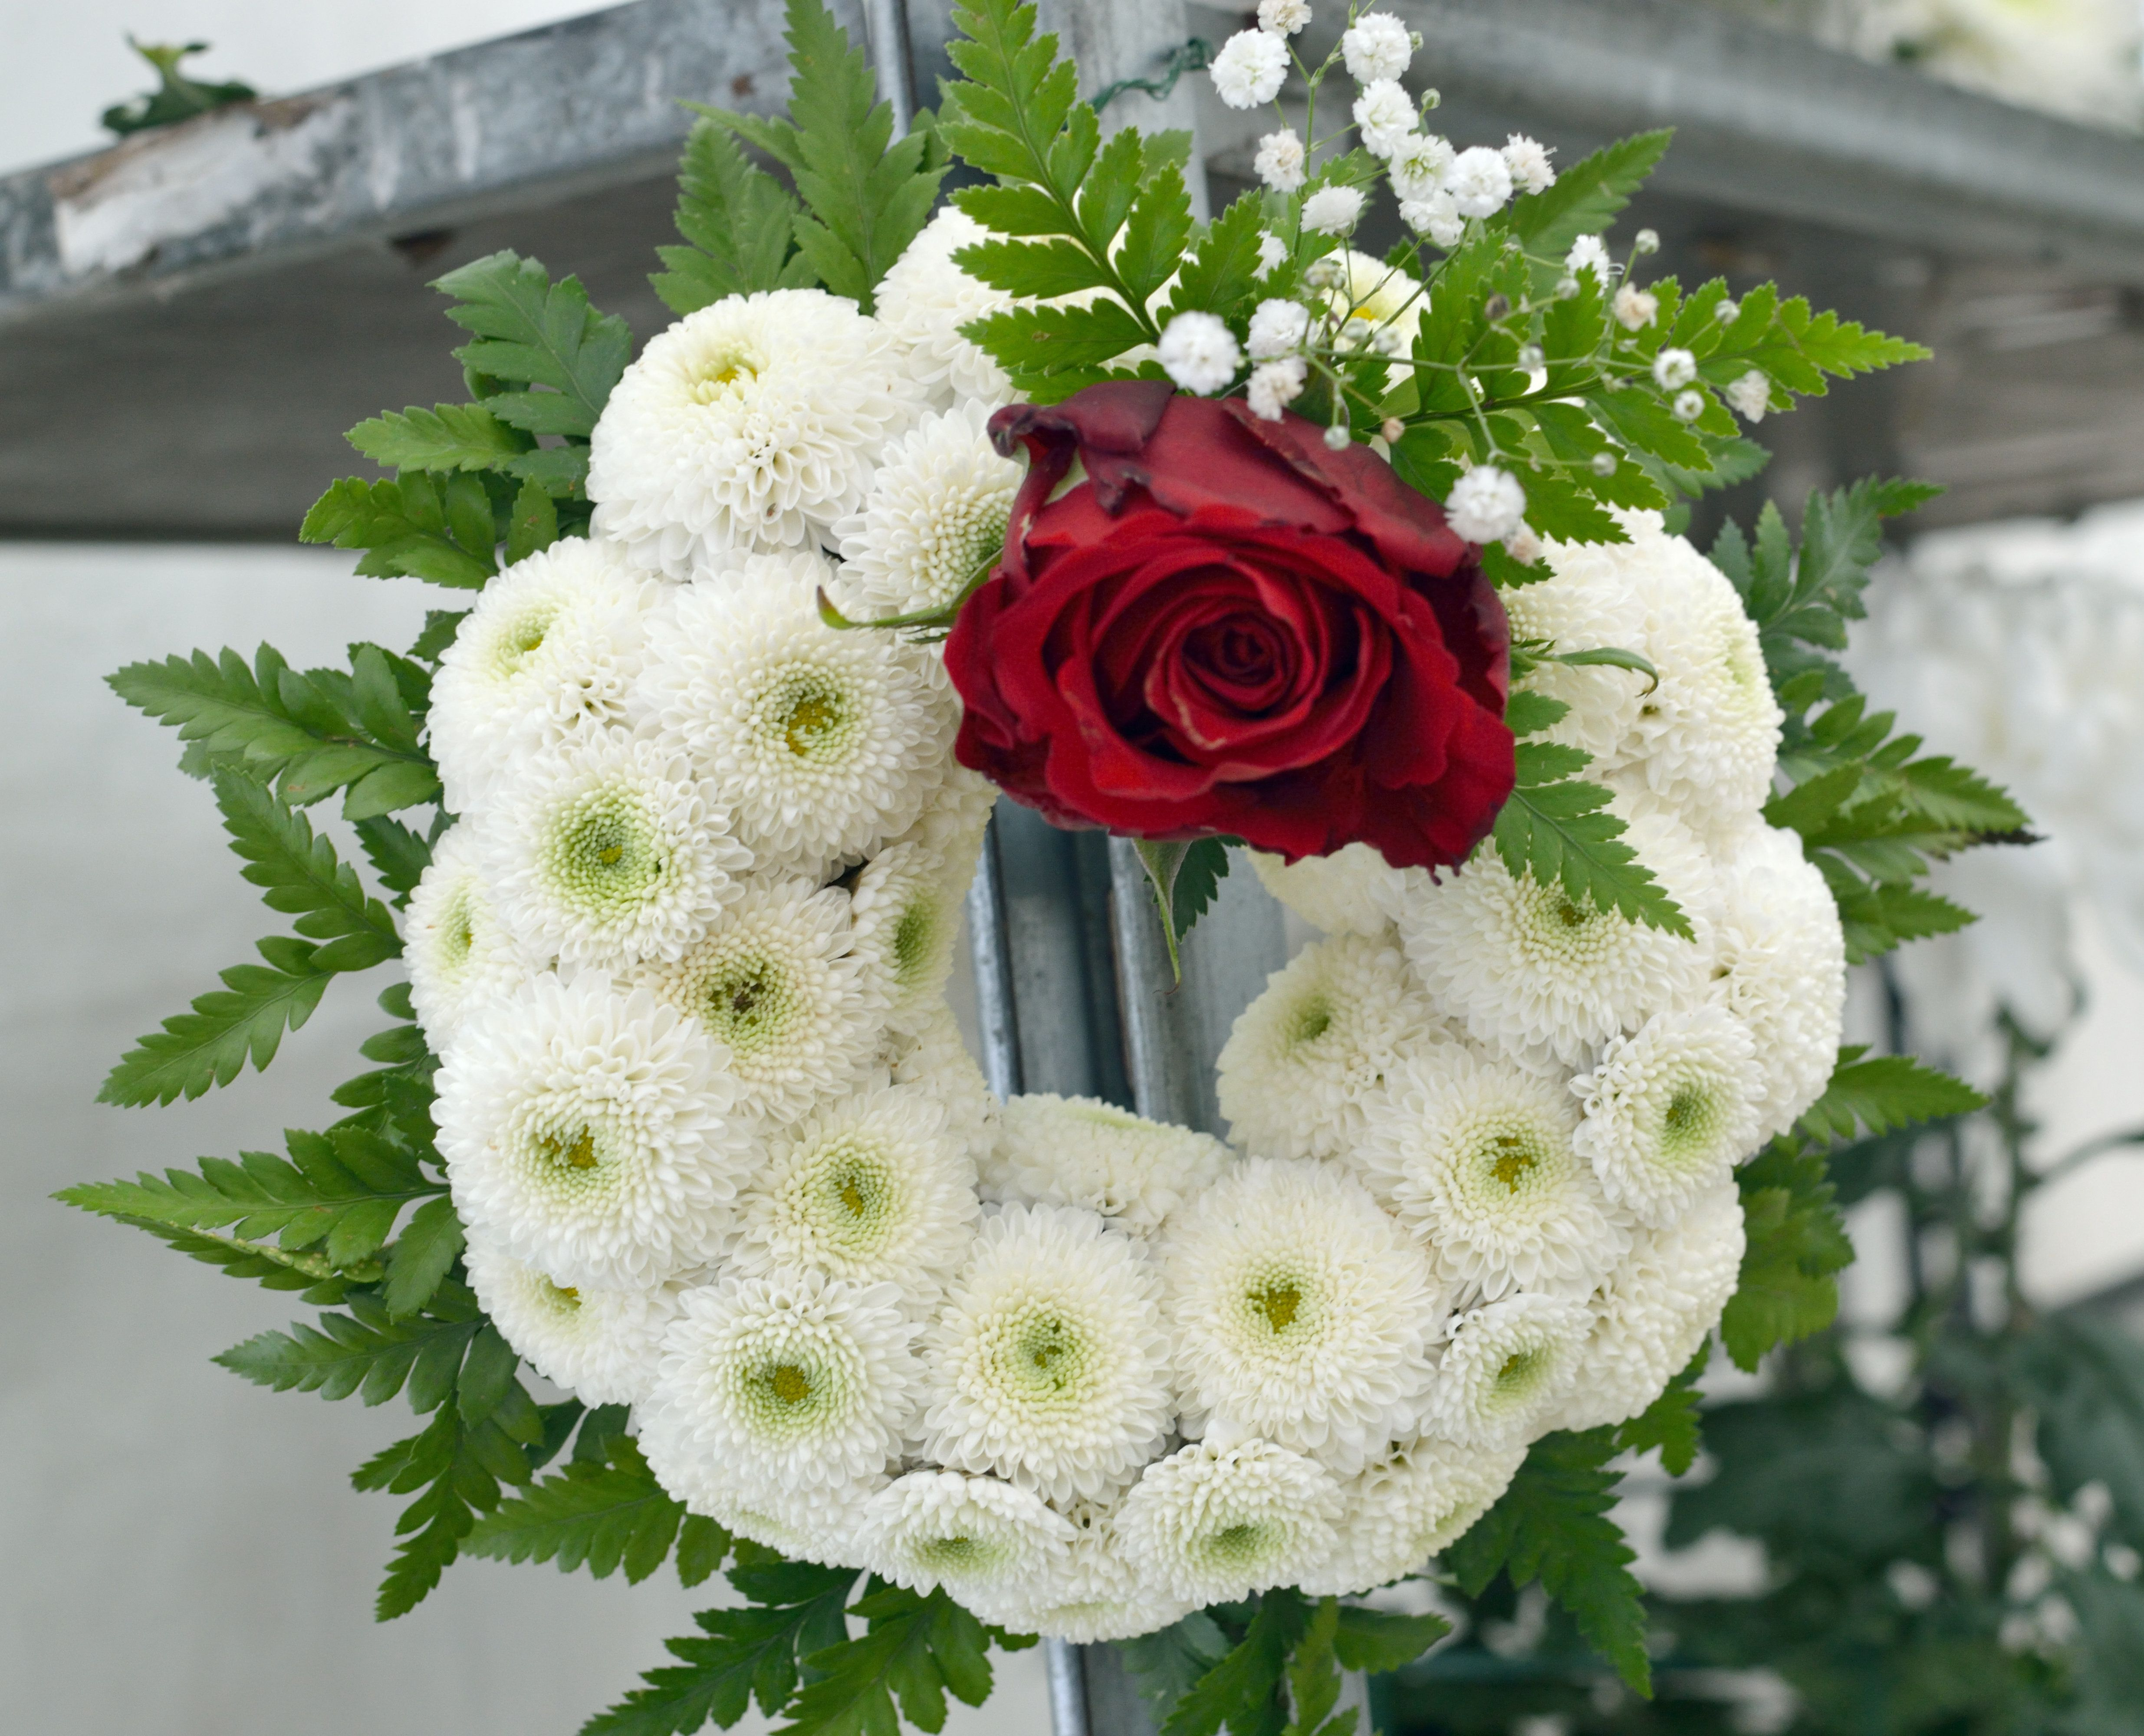 wreath consisting of white chrysanthemums with red rose